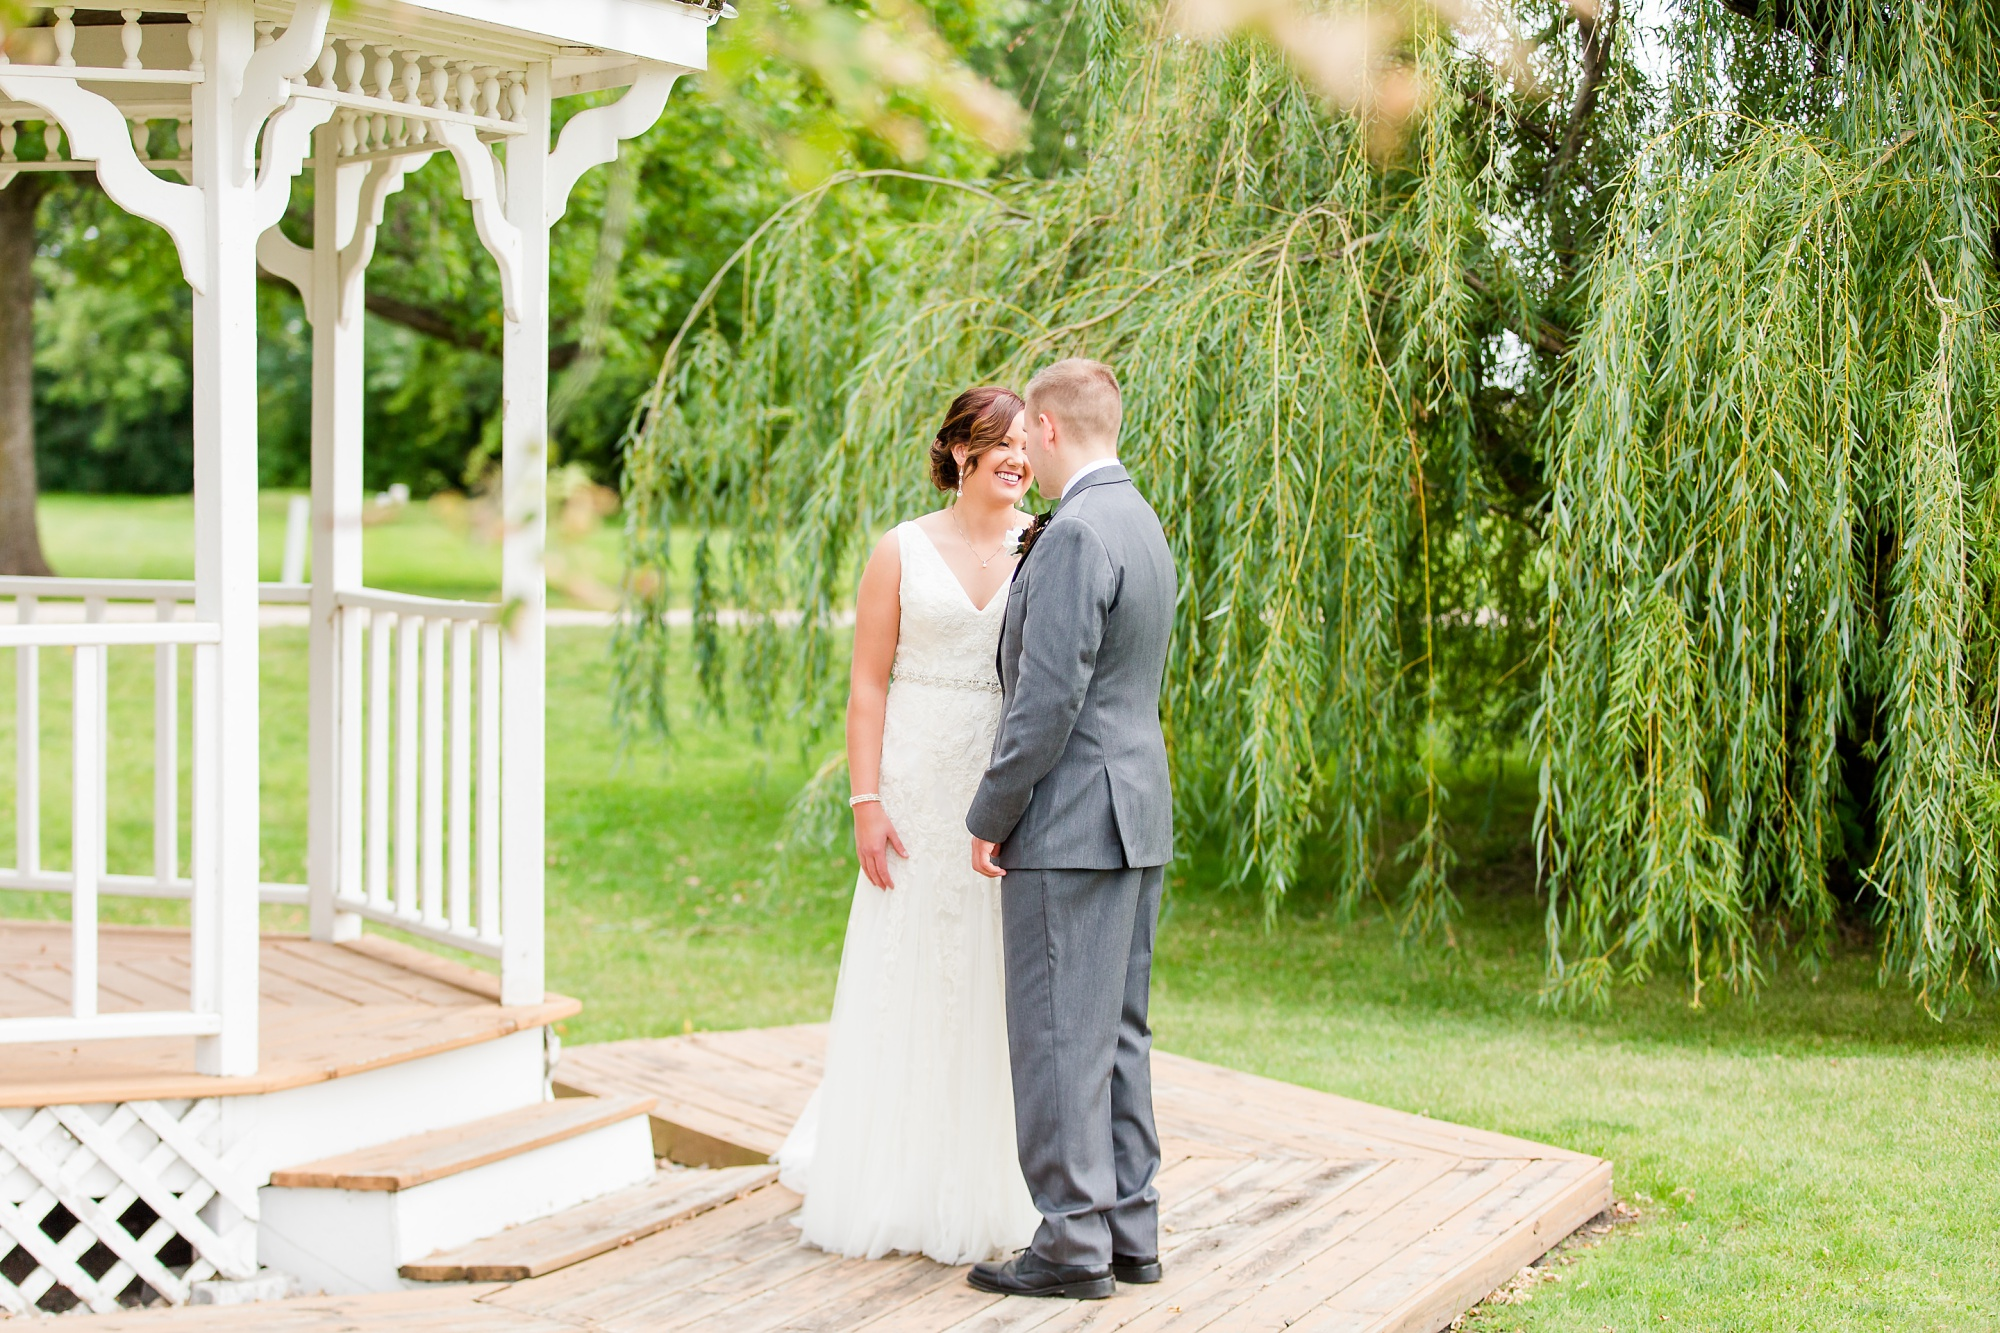 Amber Langerud Photography_Moohread, Outdoor, Barn Wedding at A Friends House_7050.jpg